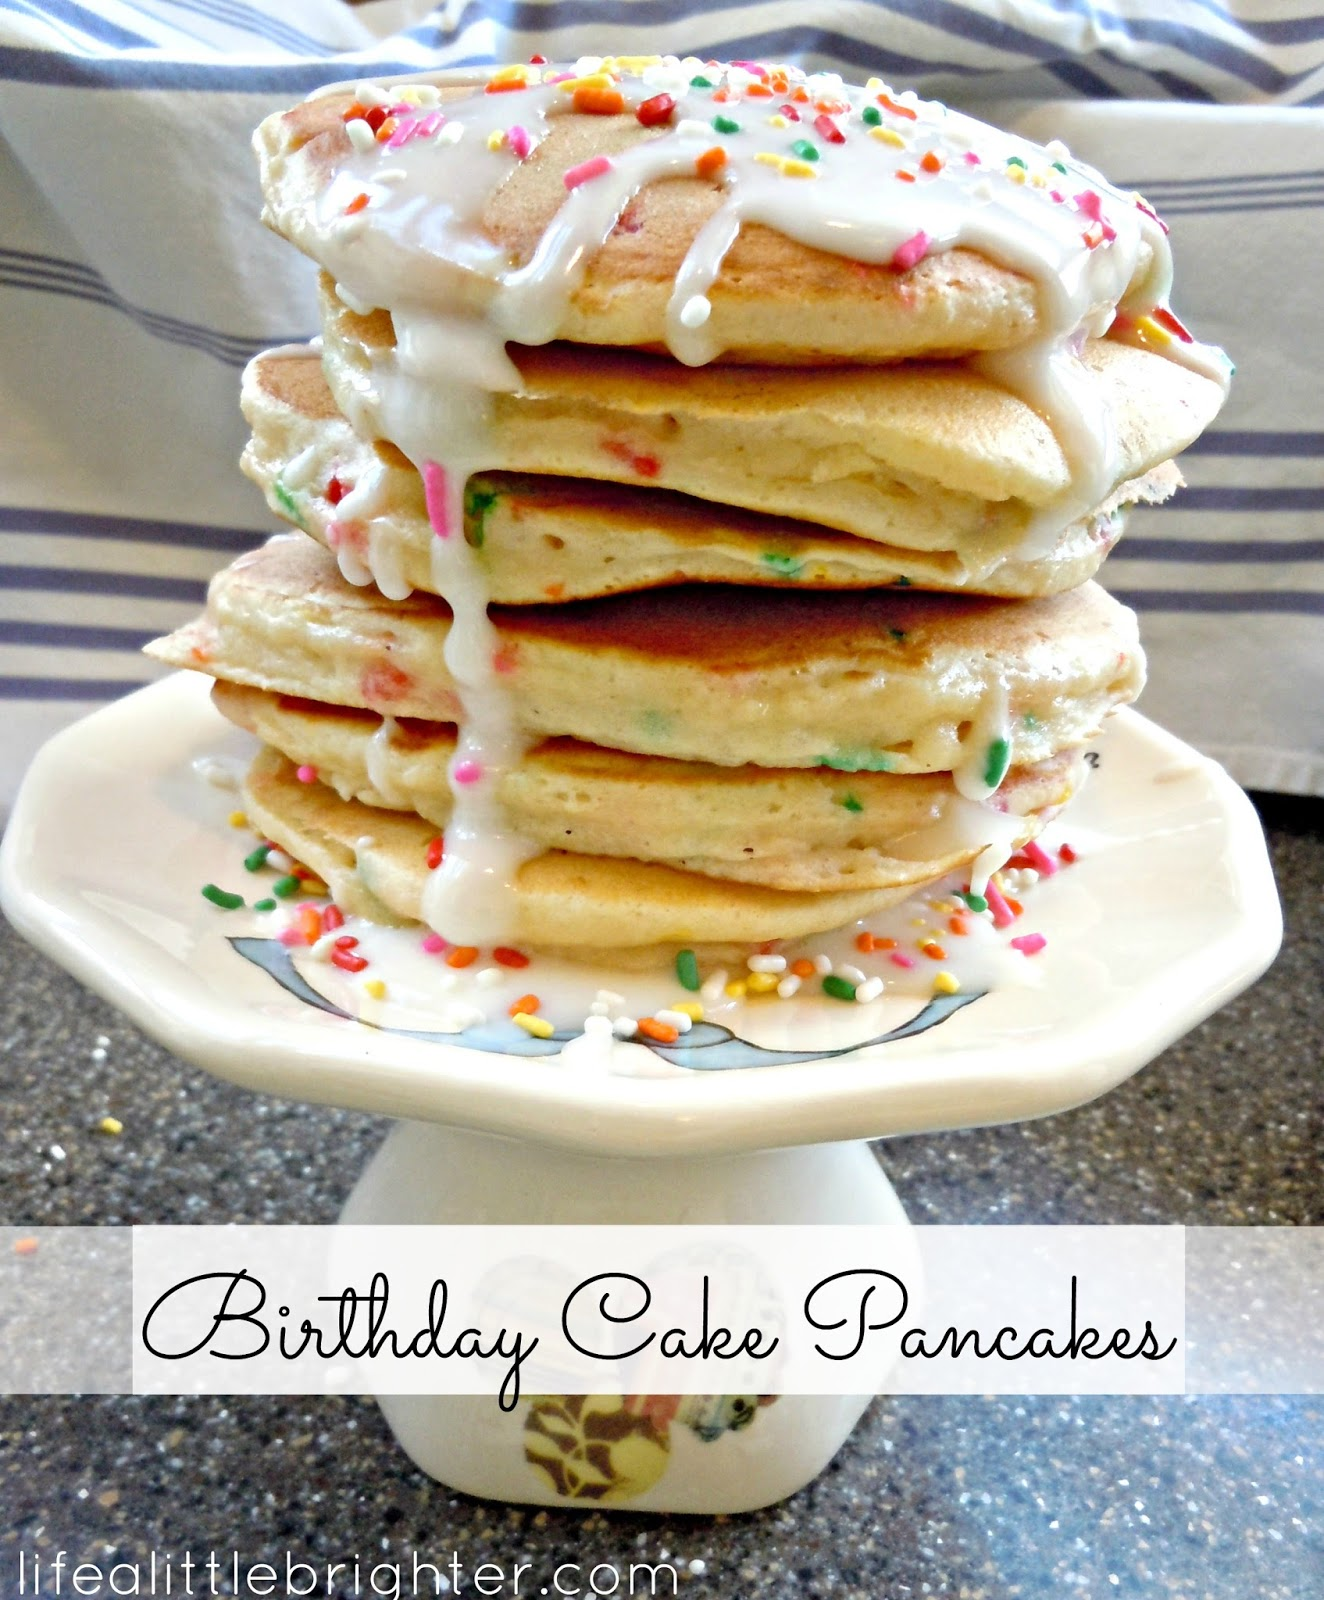 Life A Little Brighter Birthday Cake Pancakes